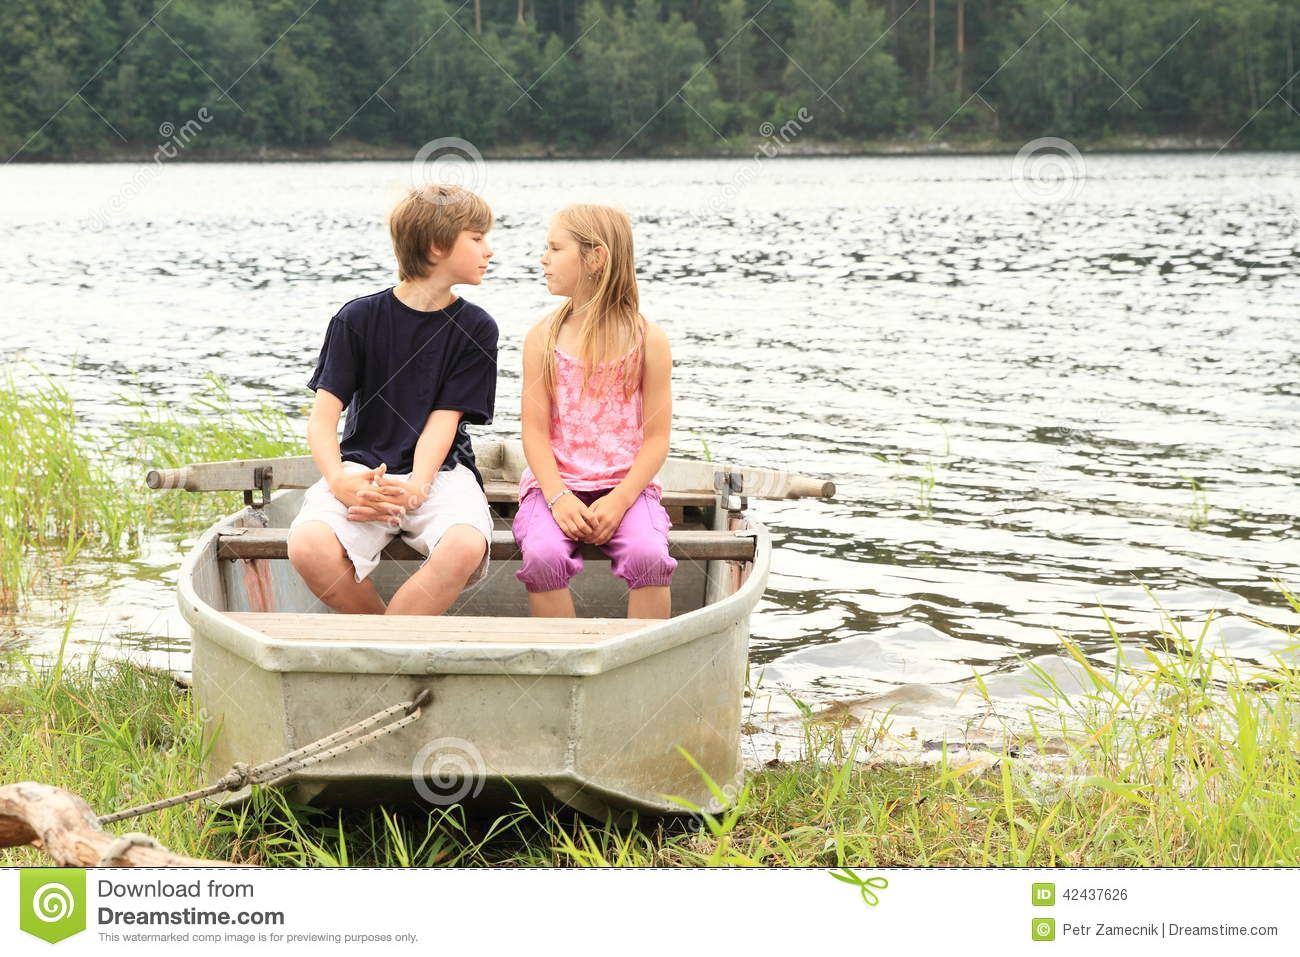 Kids in punt - first kiss stock photo. Image of inloved - 42437626